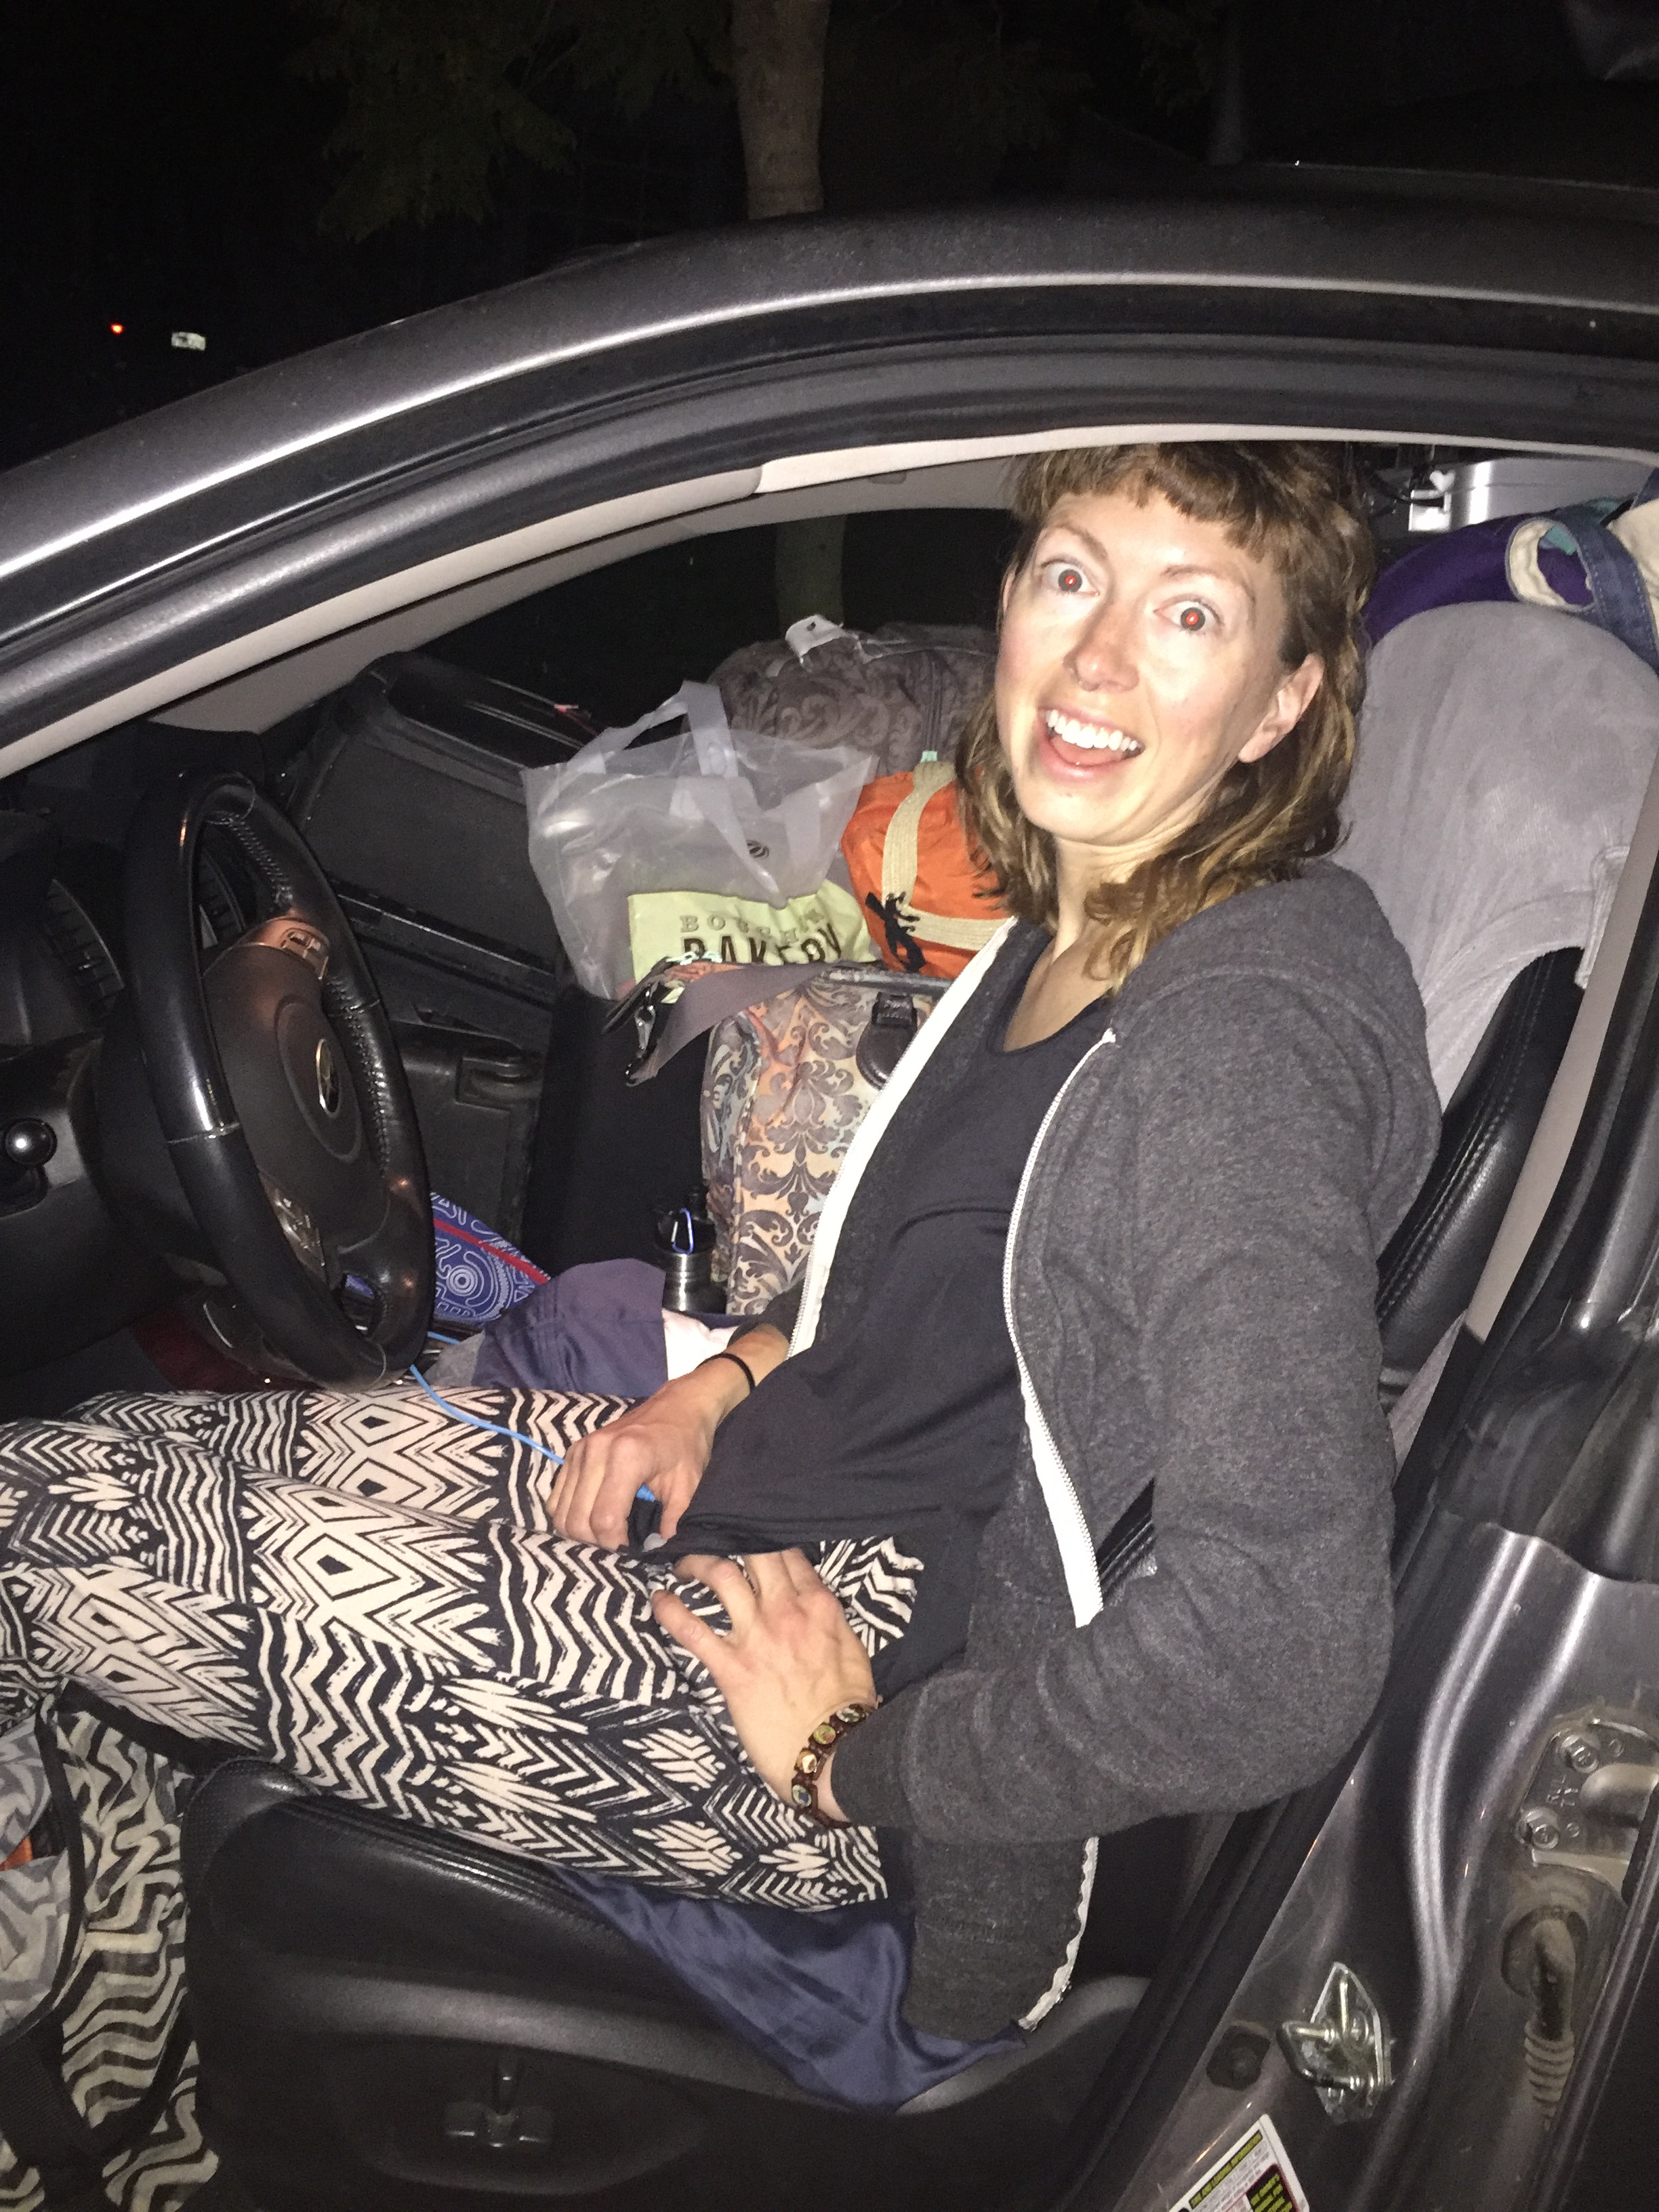 Crazy eyes, crazy pants, loaded car, here we go!